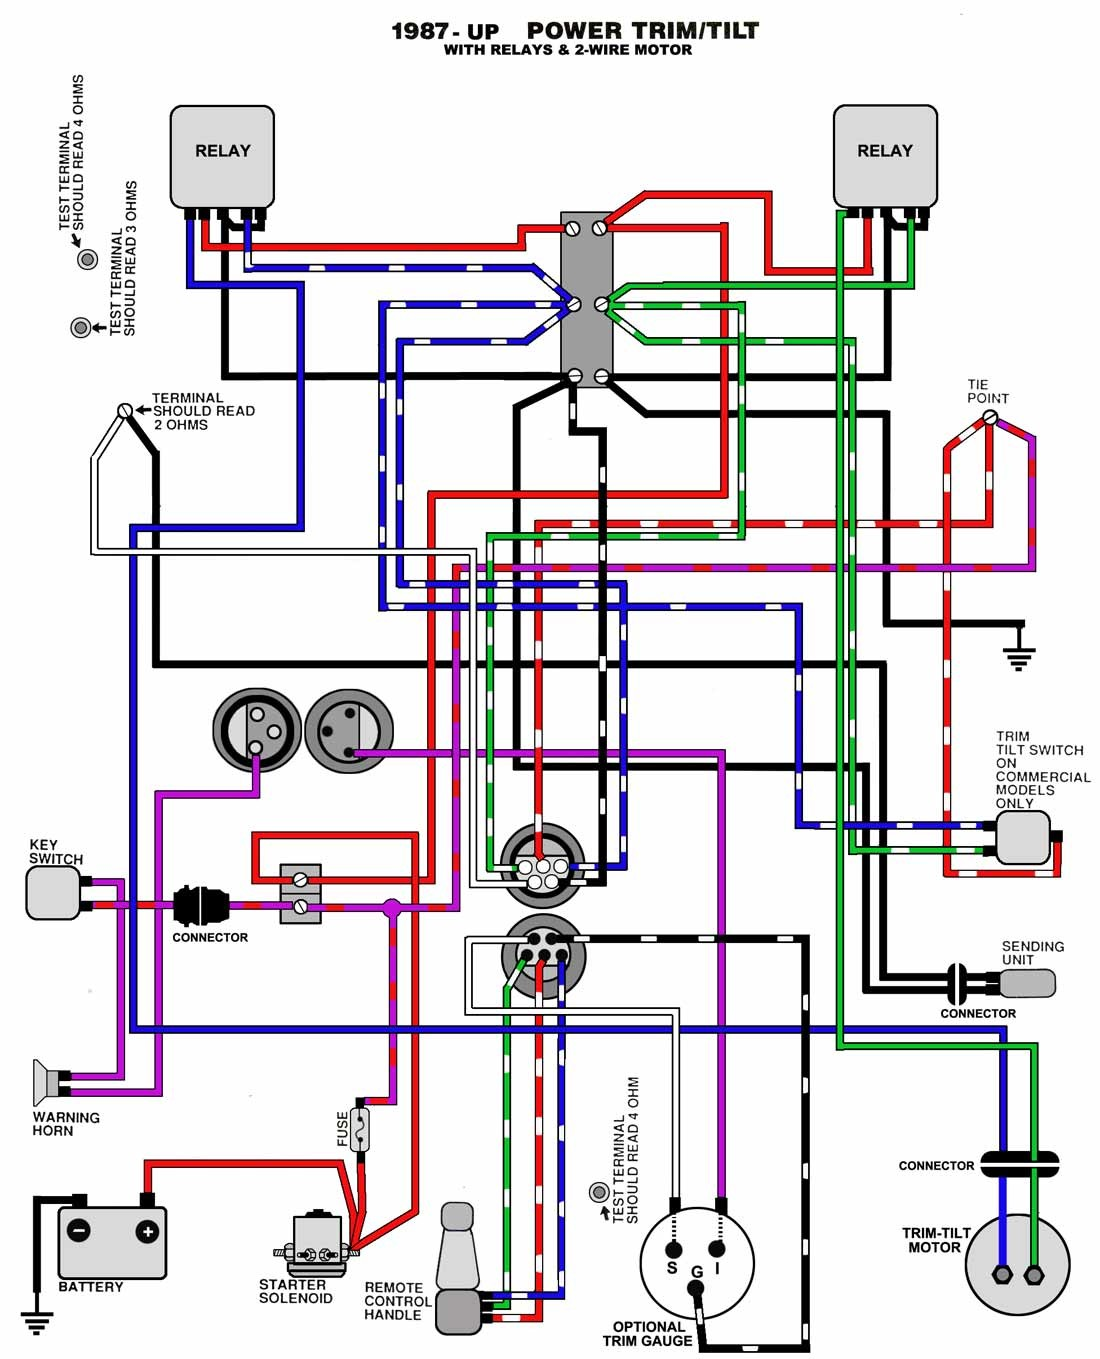 Mercury 45 Hp Wiring Diagram - Diagram Schematic Ideas on 480 power in diagram, 230 volt outlet diagram, amperage and volt water diagram, single-phase motor reversing diagram, pneumatic actuator diagram, snugtop power actuator installation diagram, 220 volt diagram,